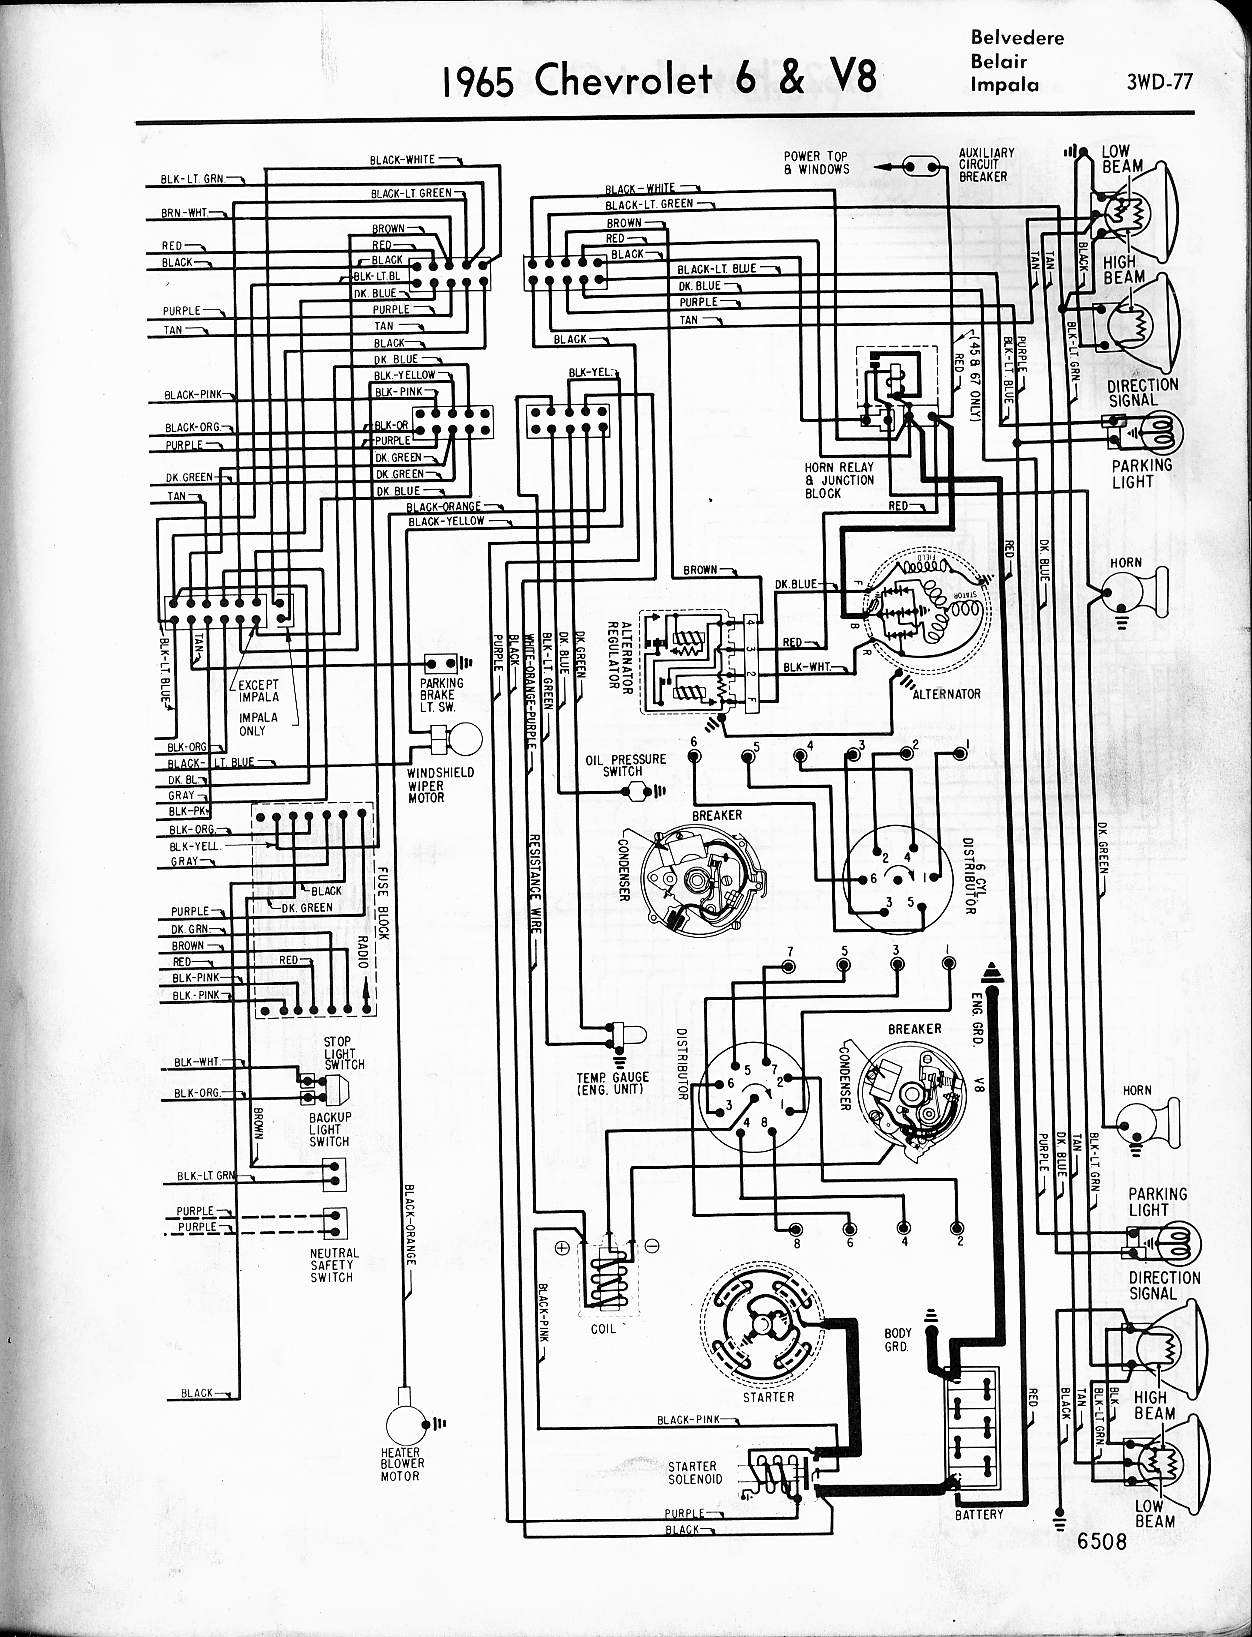 All Generation Wiring Schematics – Chevy Nova Forum – readingrat.net